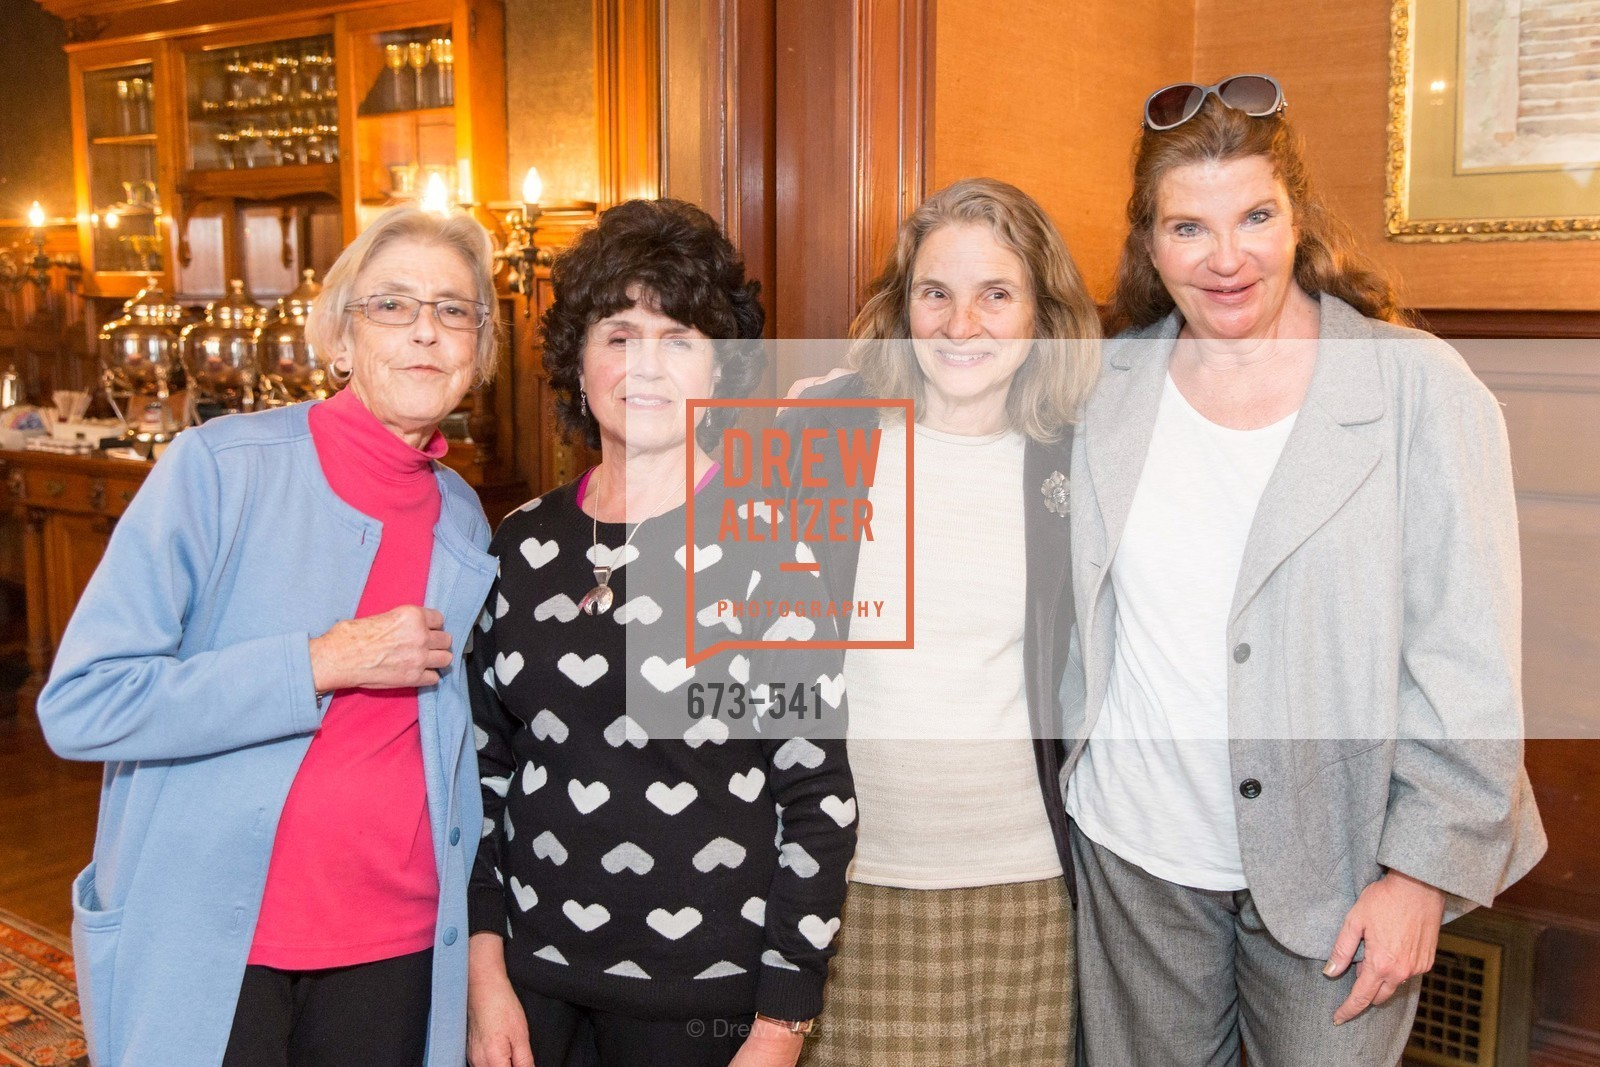 Nancy Glass, Esther Suen, Wilma Parker de Pavloff, Kathleen Hewtson, Ceremony Inaugurating the Campaign for San Francisco Heritage & Haas-Lilienthal House, Haas-Lilienthal House. 2007 Franklin Street, November 18th, 2015,Drew Altizer, Drew Altizer Photography, full-service agency, private events, San Francisco photographer, photographer california